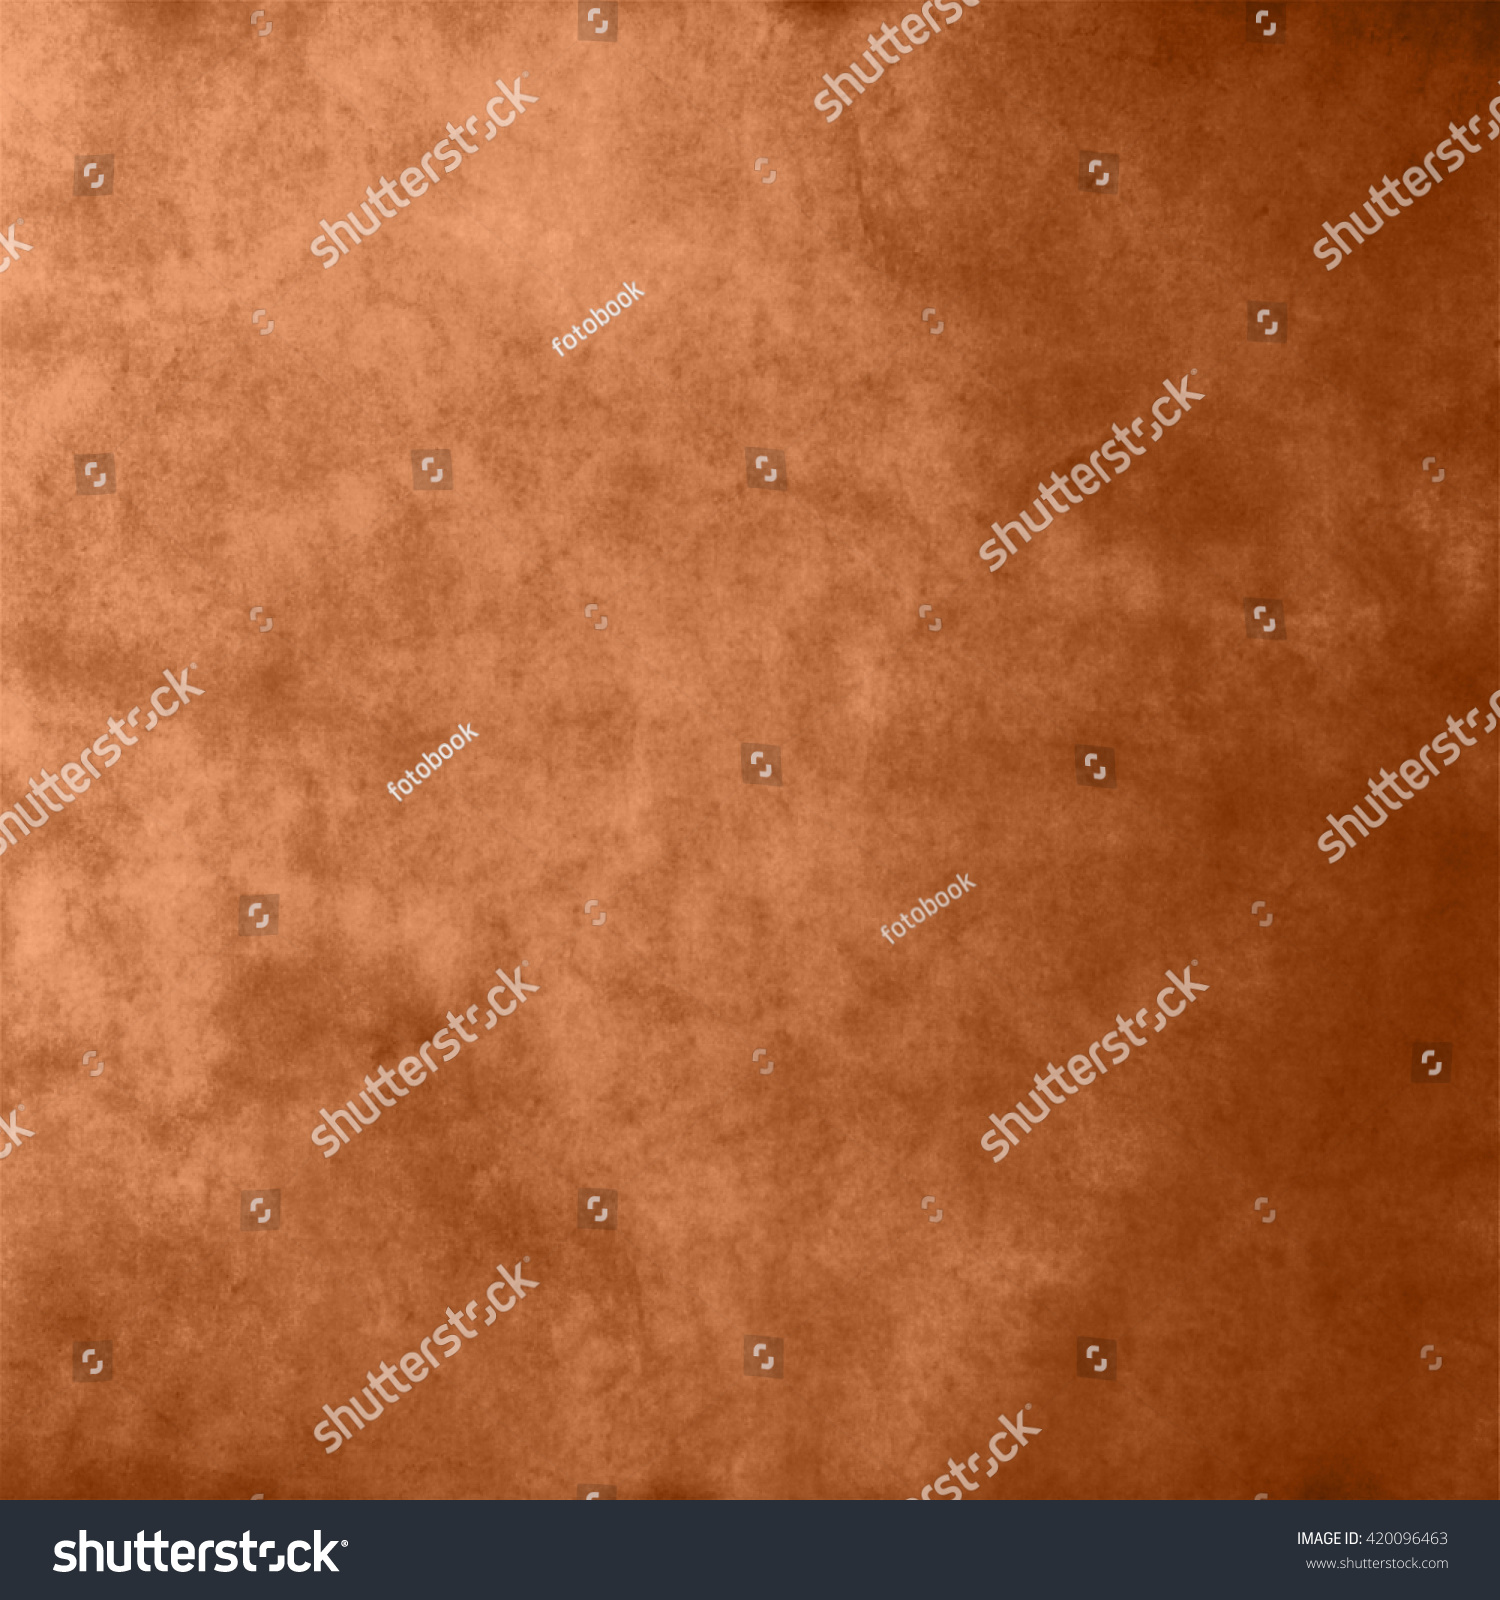 brown vintage background #420096463